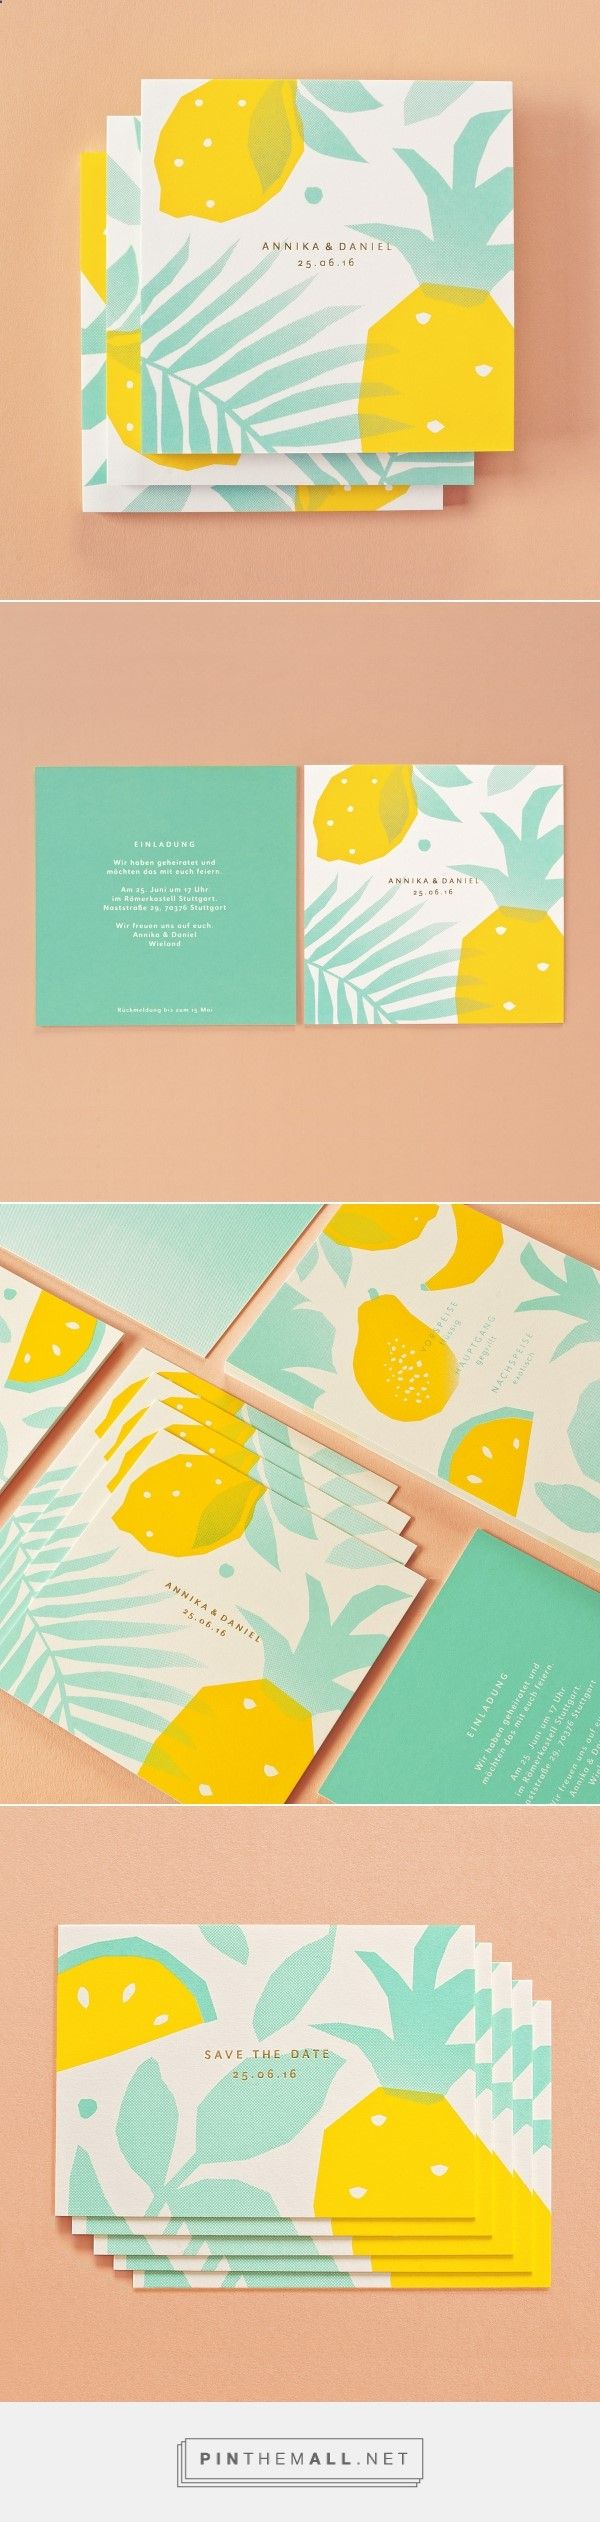 Tropical Wedding by Sunda Studio | Fivestar Branding Agency – Design and Branding Agency  Inspiration Gallery ツ➧ http://www.diverint.com/imagenes-comicas-situaciones-movil